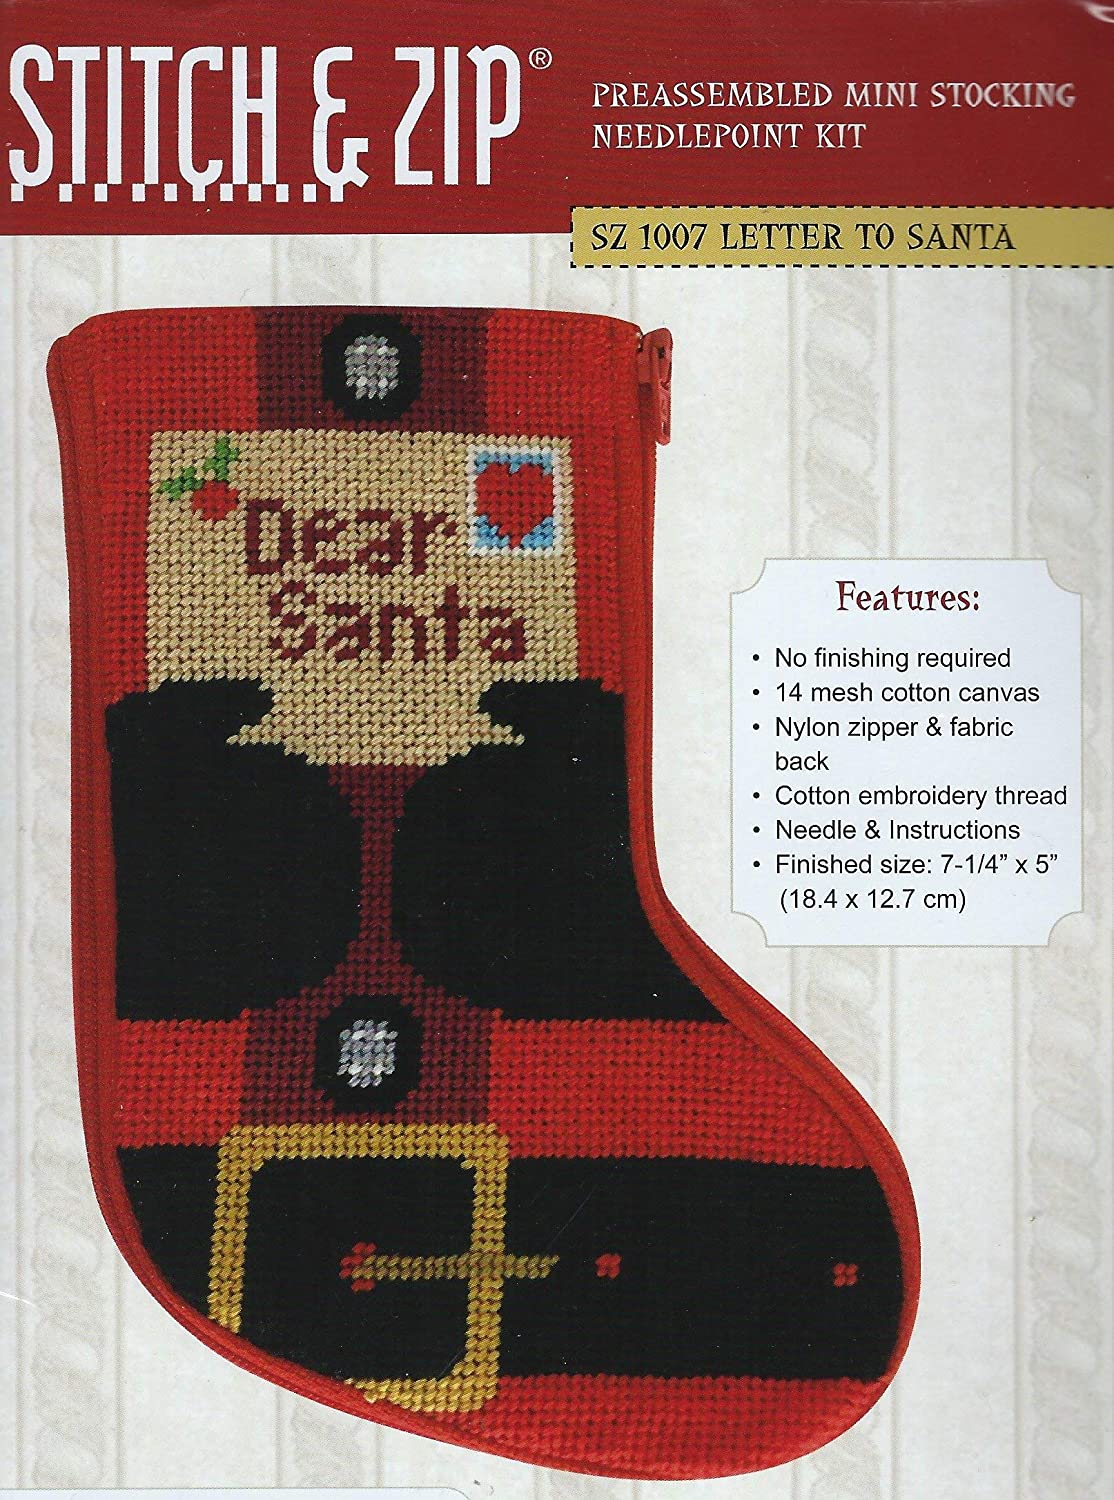 Stitch Zip Letter Safety and trust to Santa Direct store Mini Kit Needlepoint Stocking